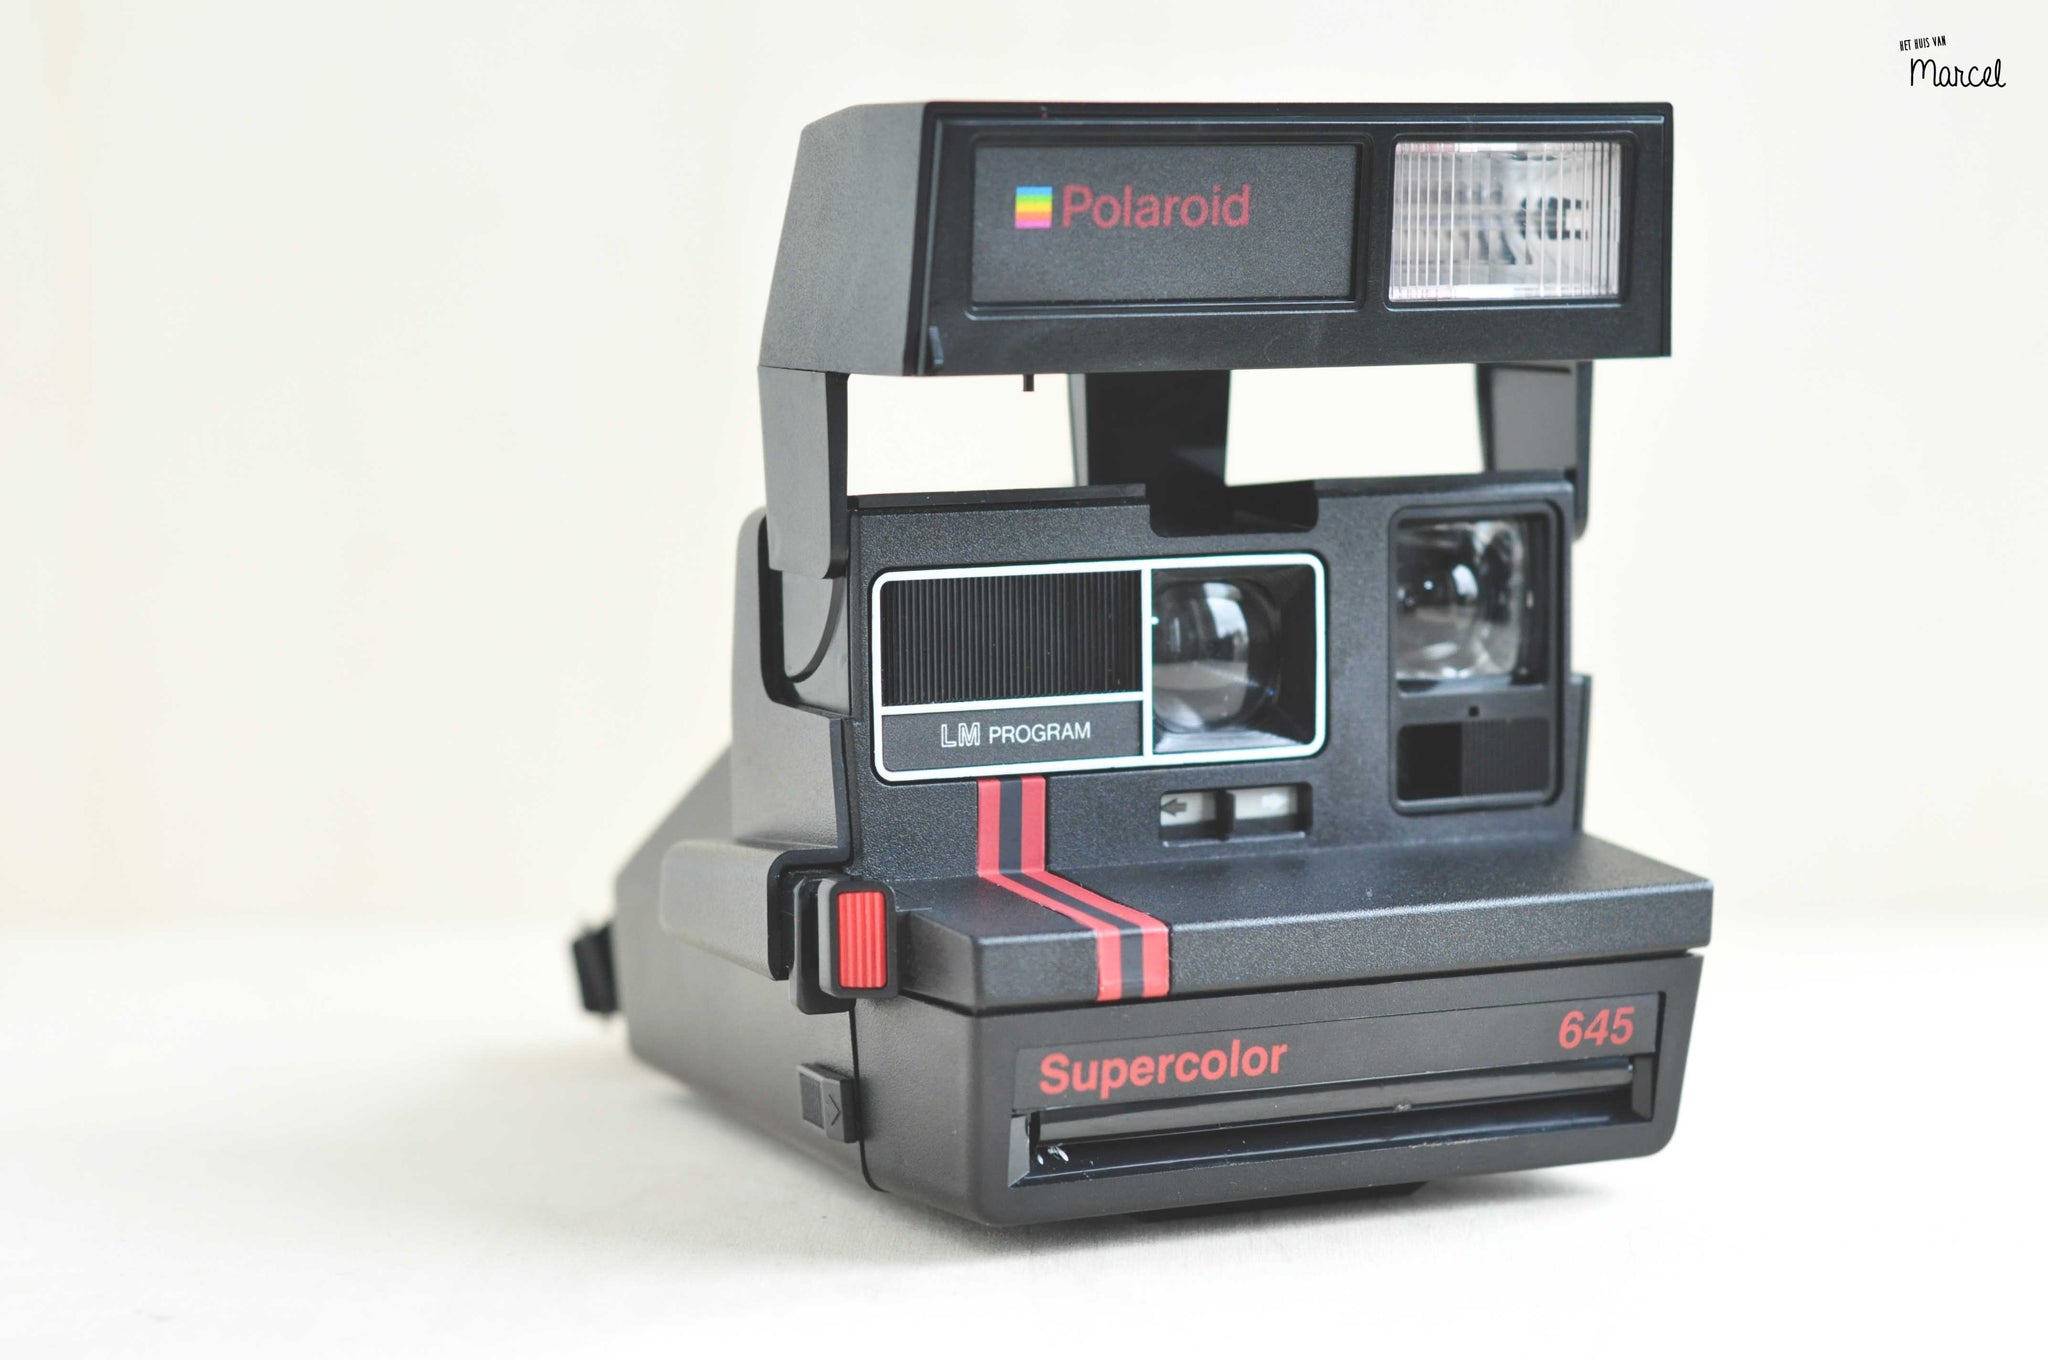 Polaroid Supercolor 645 Camera